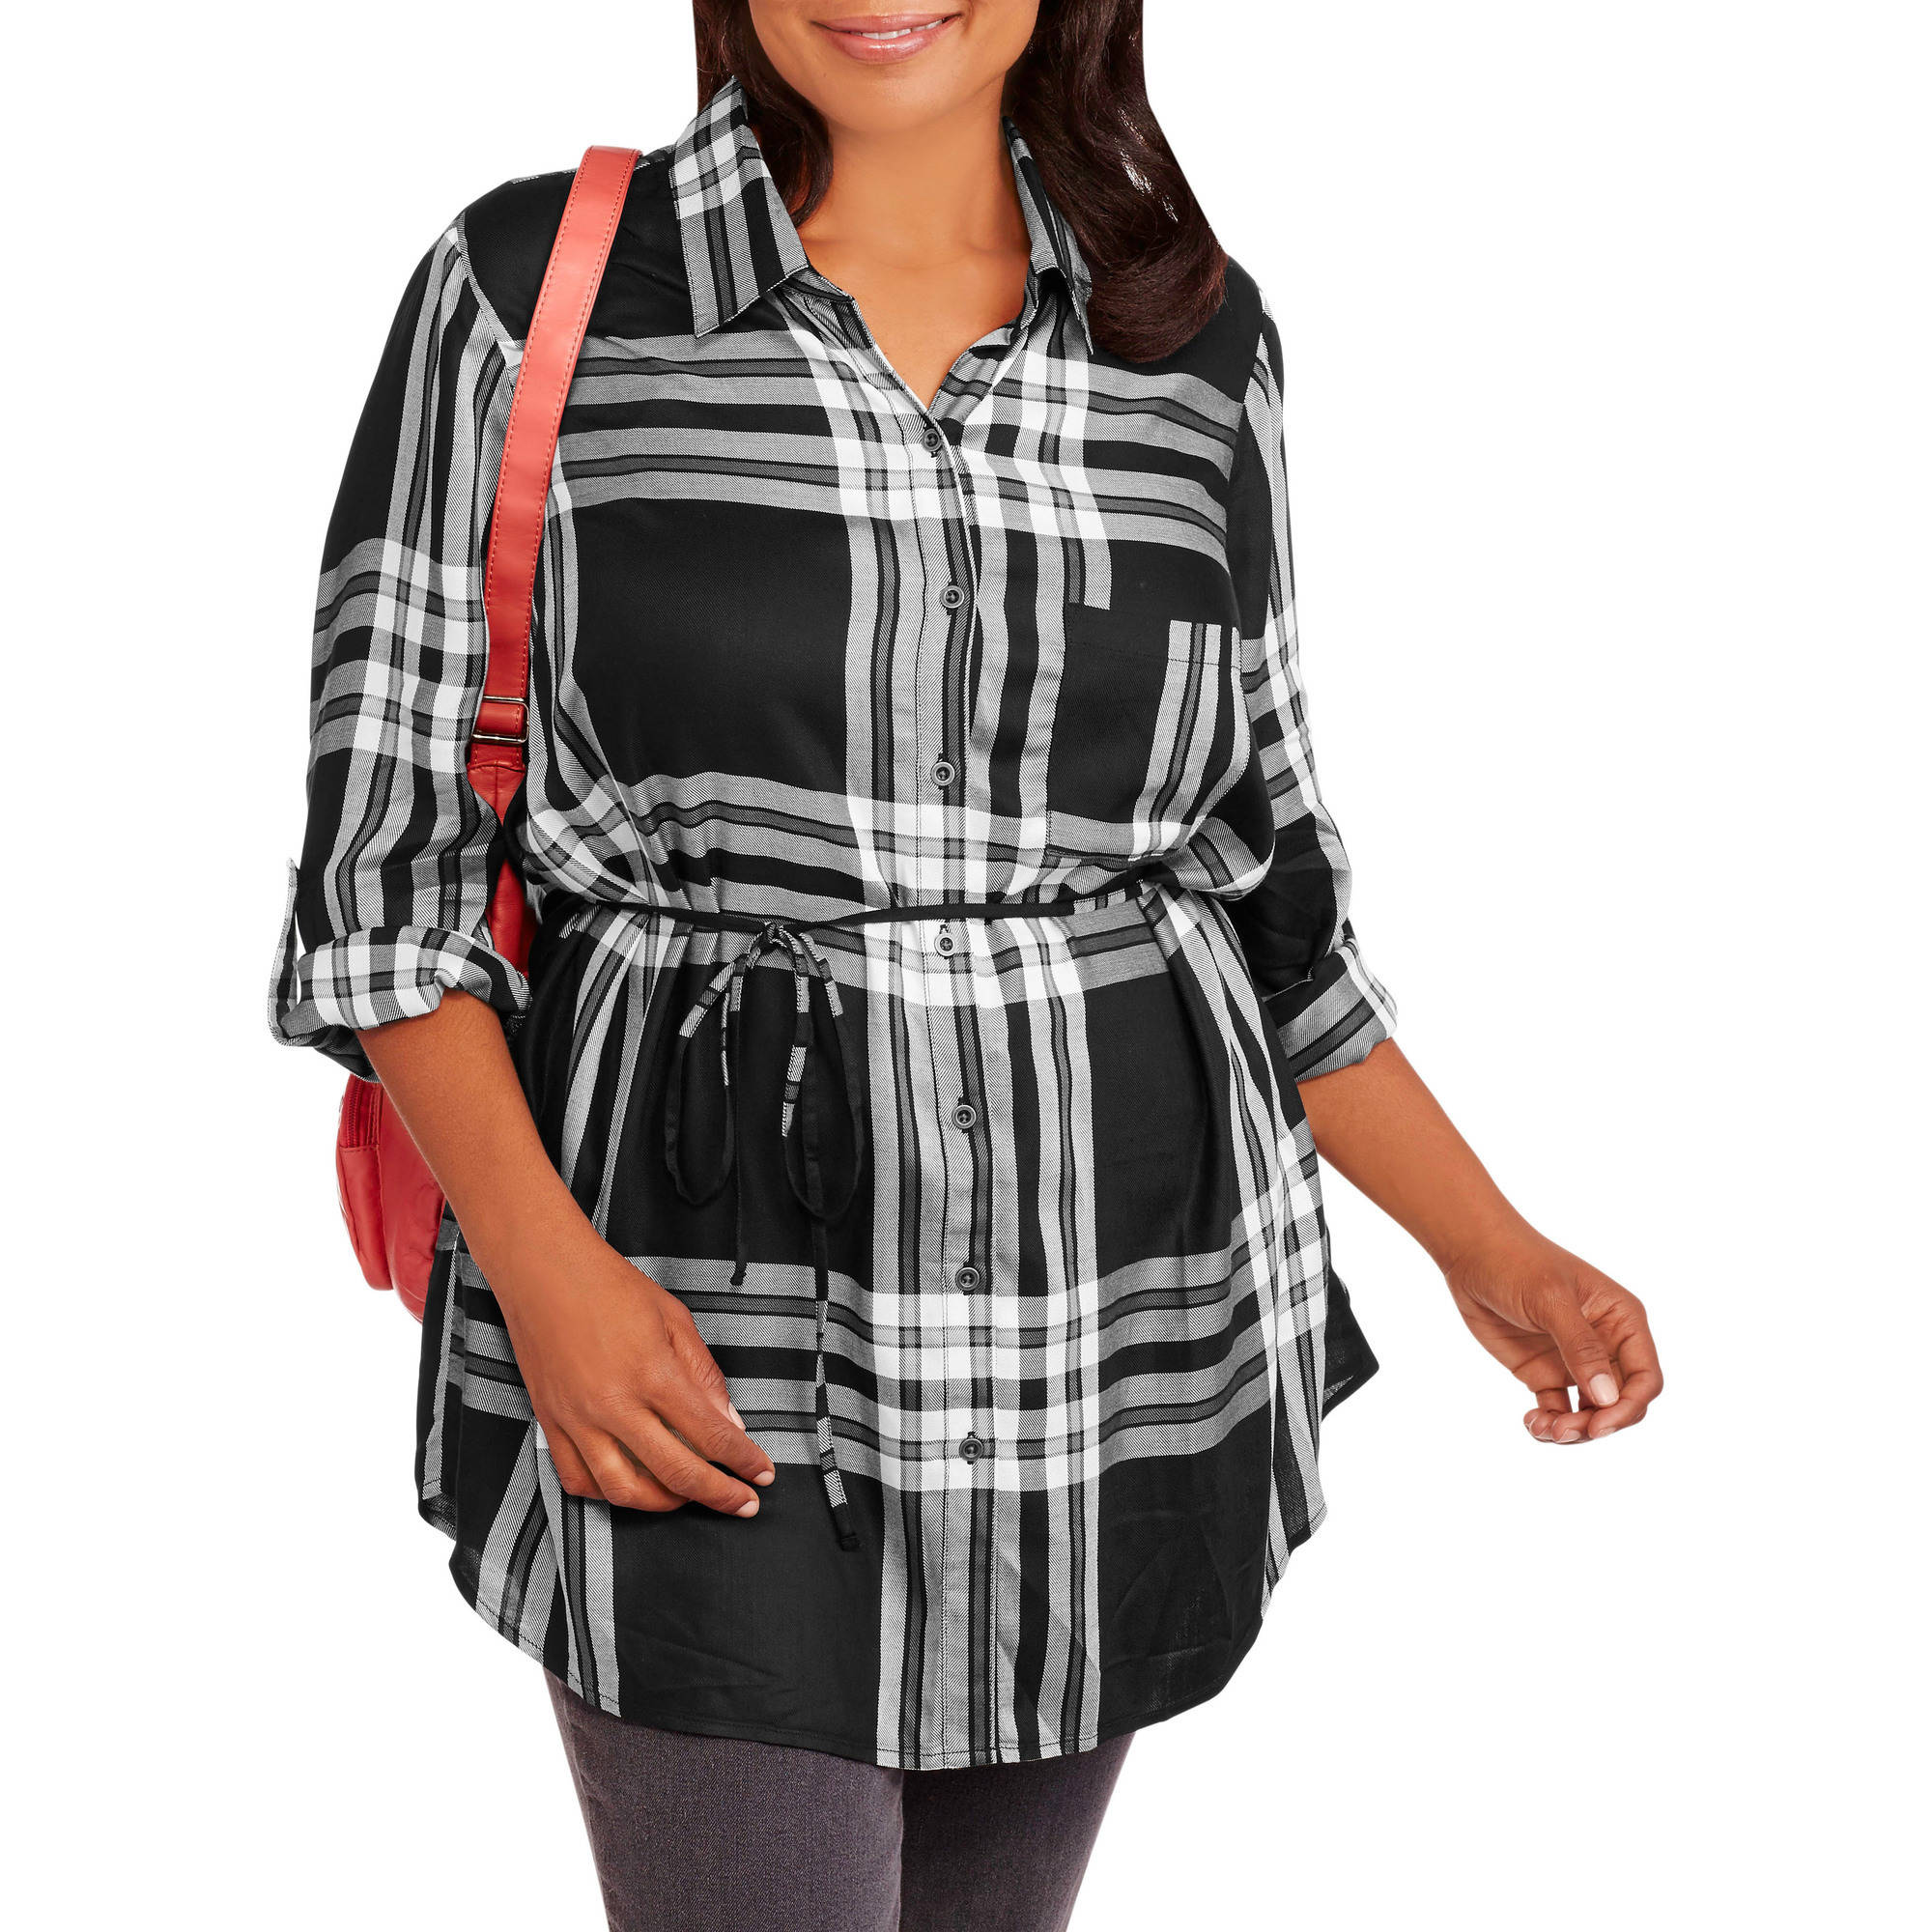 Faded Glory Women's Plus Plaid Collared Tunic Shirt